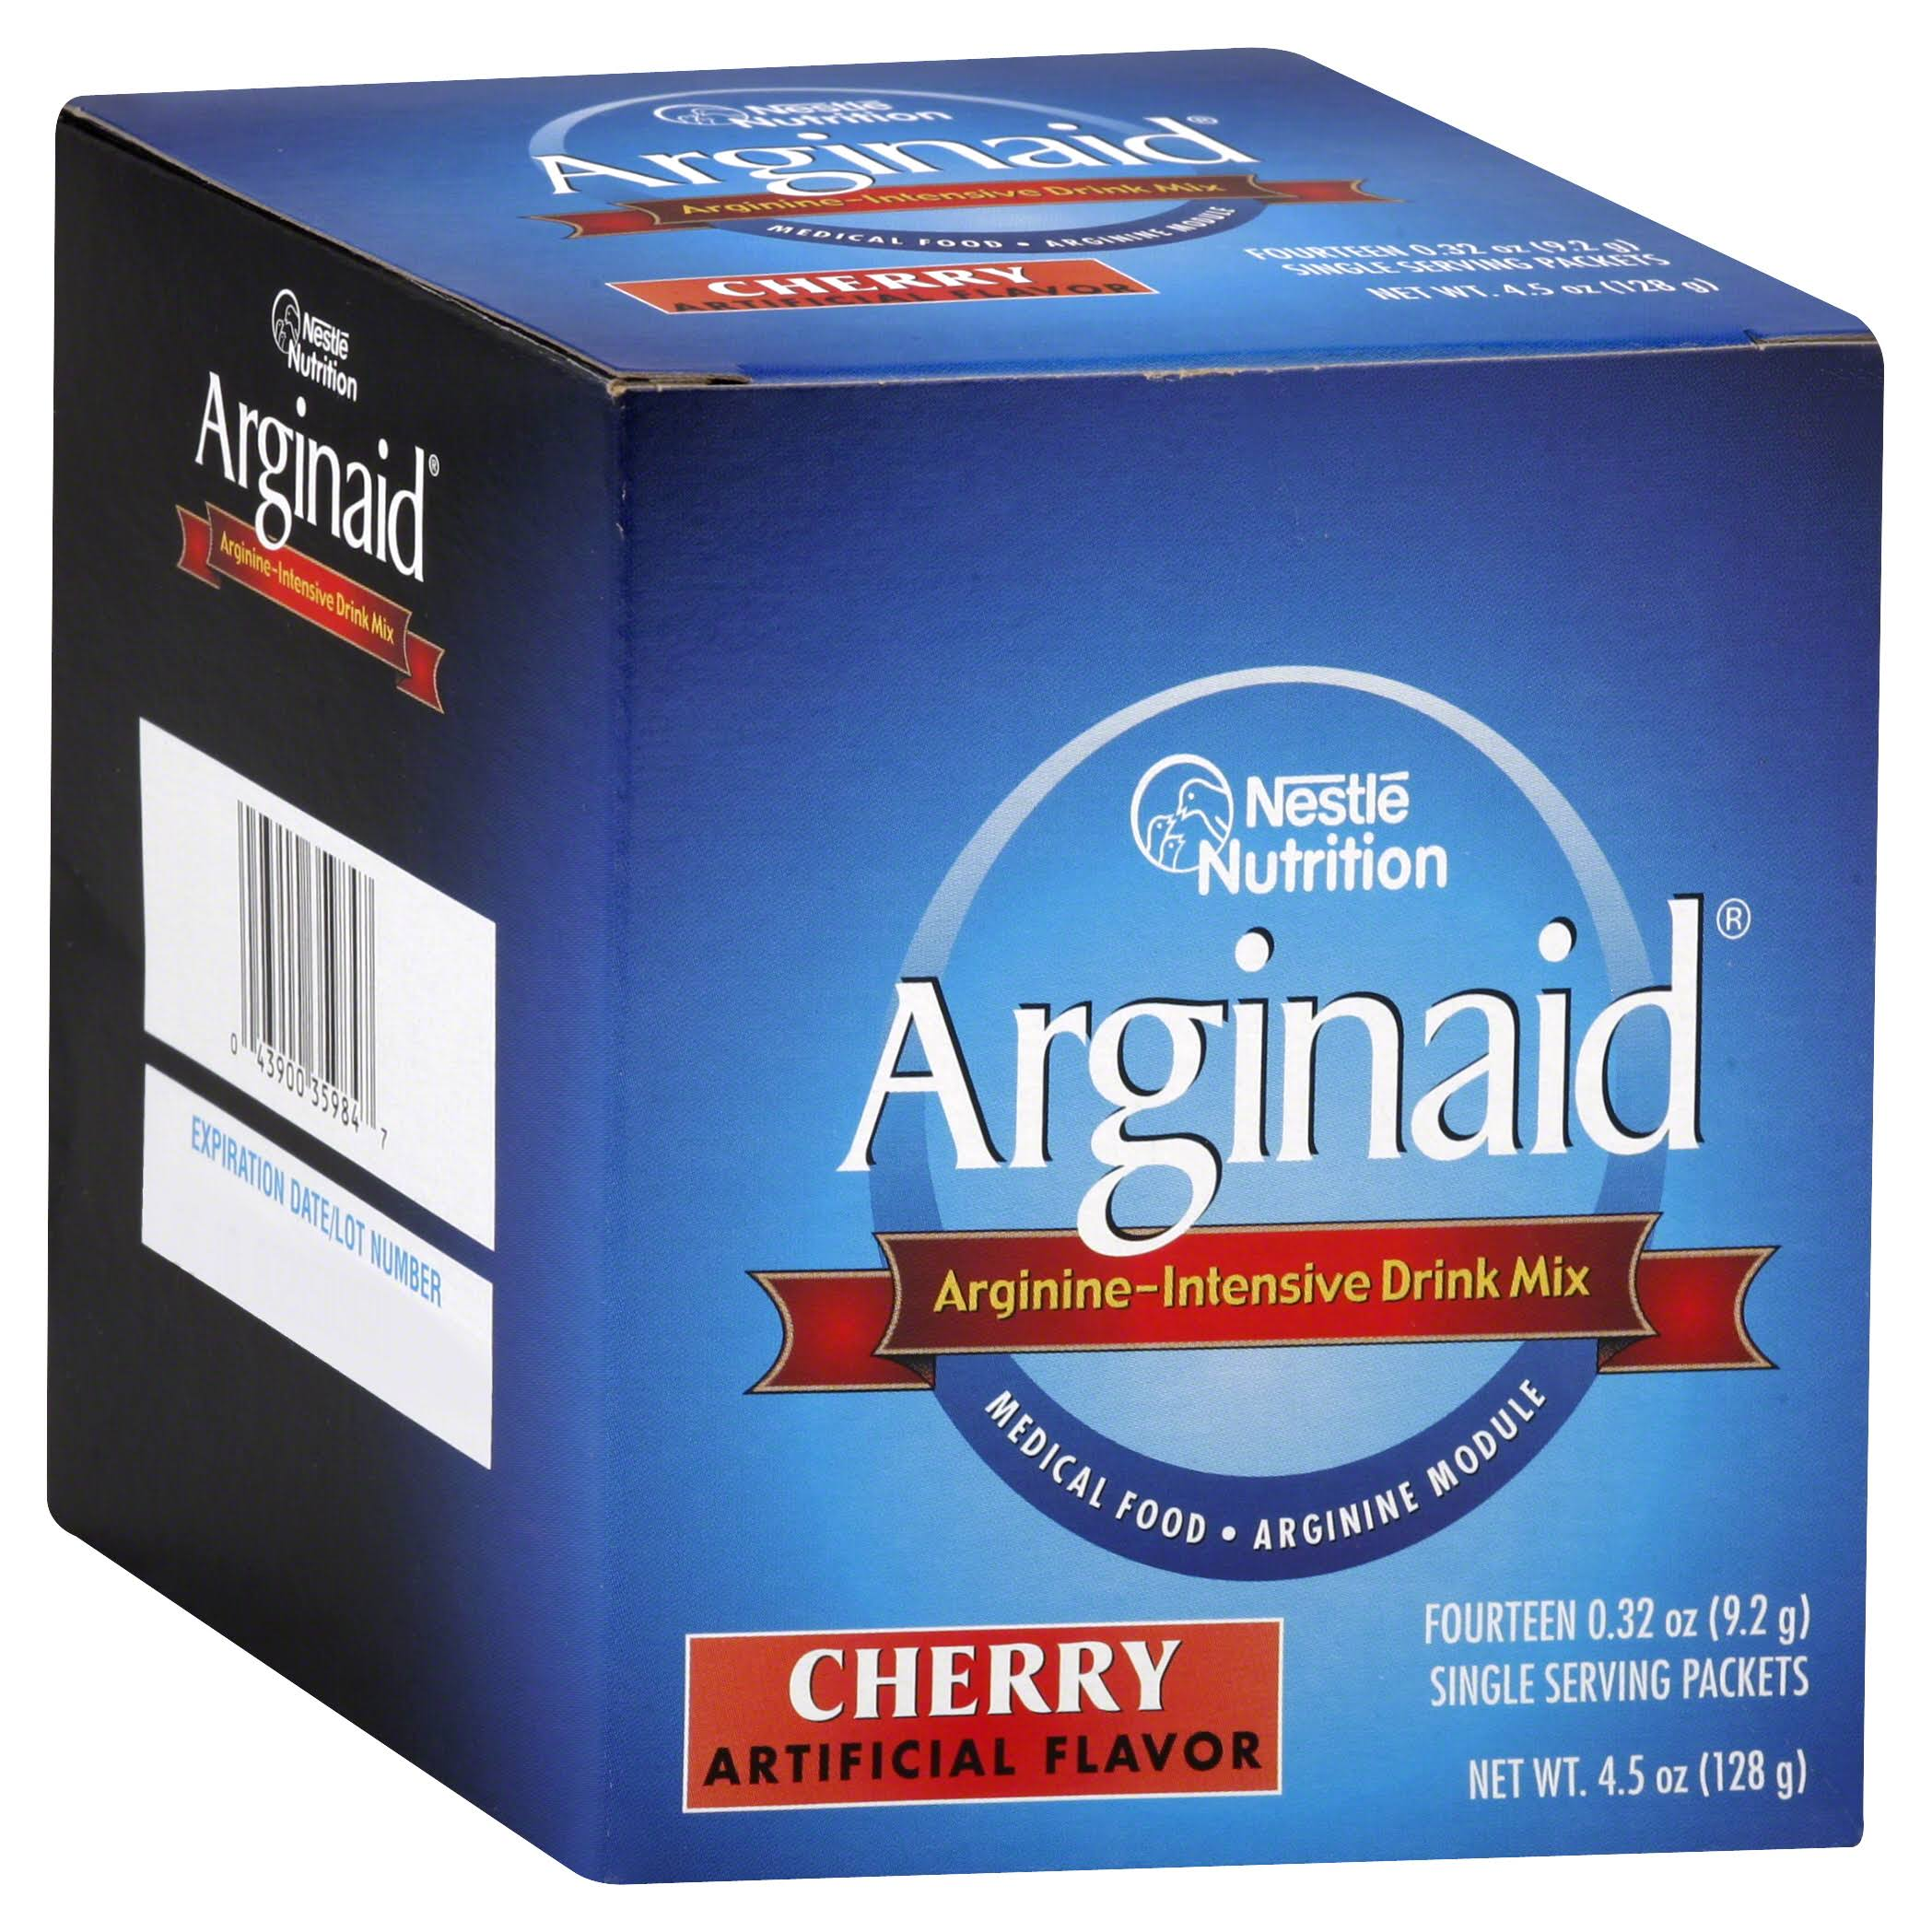 Arginaid Drink Mix, Arginine-Intensive, Cherry - 14 pack, 0.32 oz packets